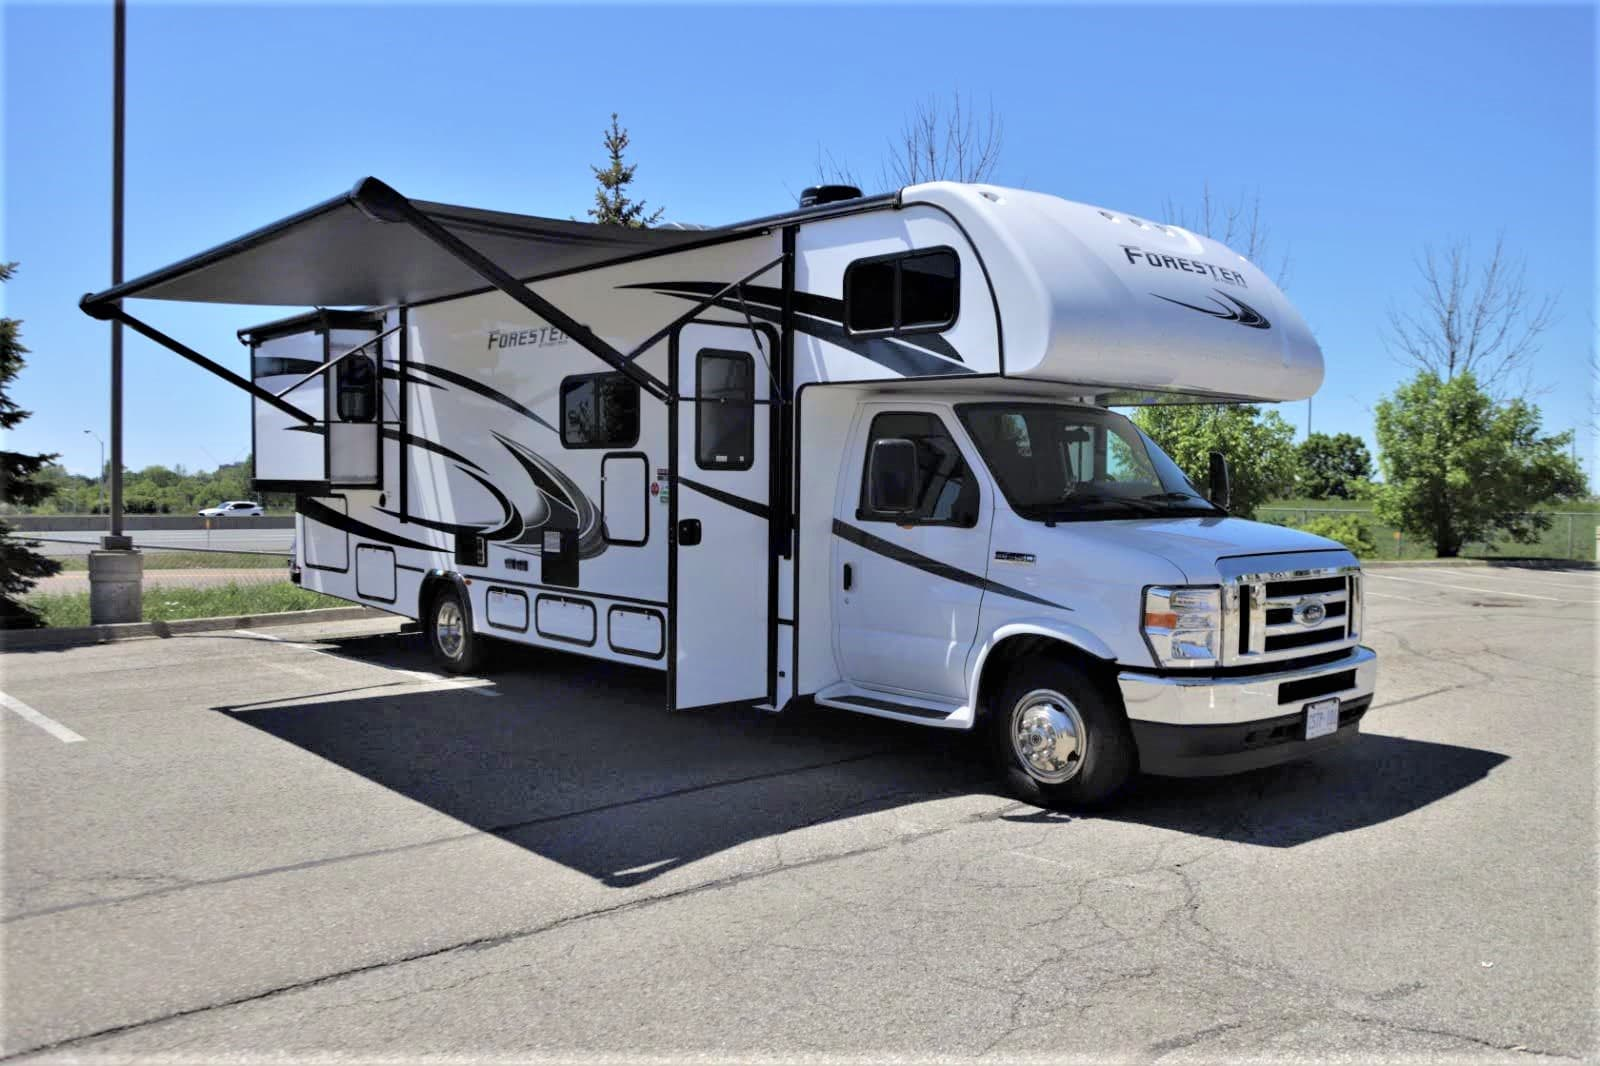 rv sun shade for relaxing outside . Forest River Forester 2021